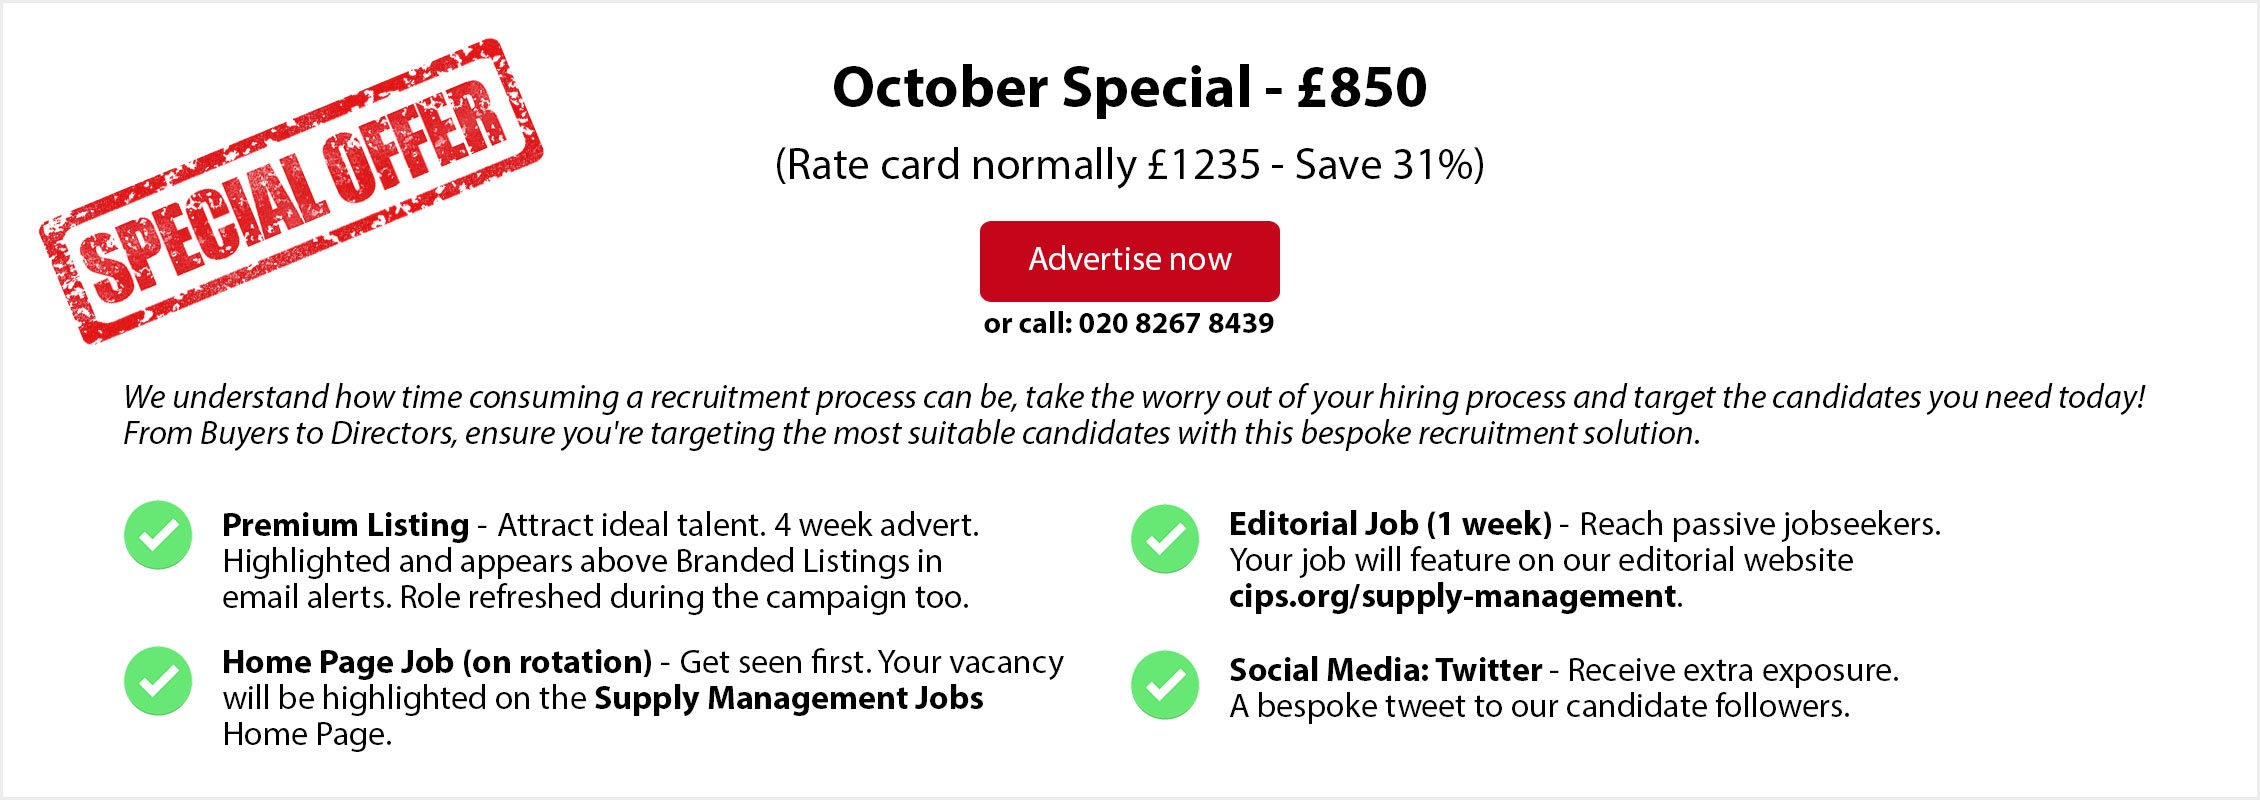 Special Offer. October Special - £850. (Rate card normally £1235 - Save 31%). ADVERTISE NOW or call: 020 8267 8439. From Buyers to Directors, ensure you're targeting the most suitable candidates with this bespoke recruitment solution. Premium Listing - Attract ideal talent. 4 week advert. Highlighted and appears above Branded Listings in email alerts. Role refreshed during the campaign too.   Home Page Job (on rotation) - Get seen first. Your vacancy will be highlighted on the Supply Management Jobs Home Page. Editorial Job (1 week) - Reach passive jobseekers.  Your job will feature on our editorial website  cips.org/supply-management. Social Media: Twitter - Receive extra exposure. A bespoke tweet to our candidate followers.